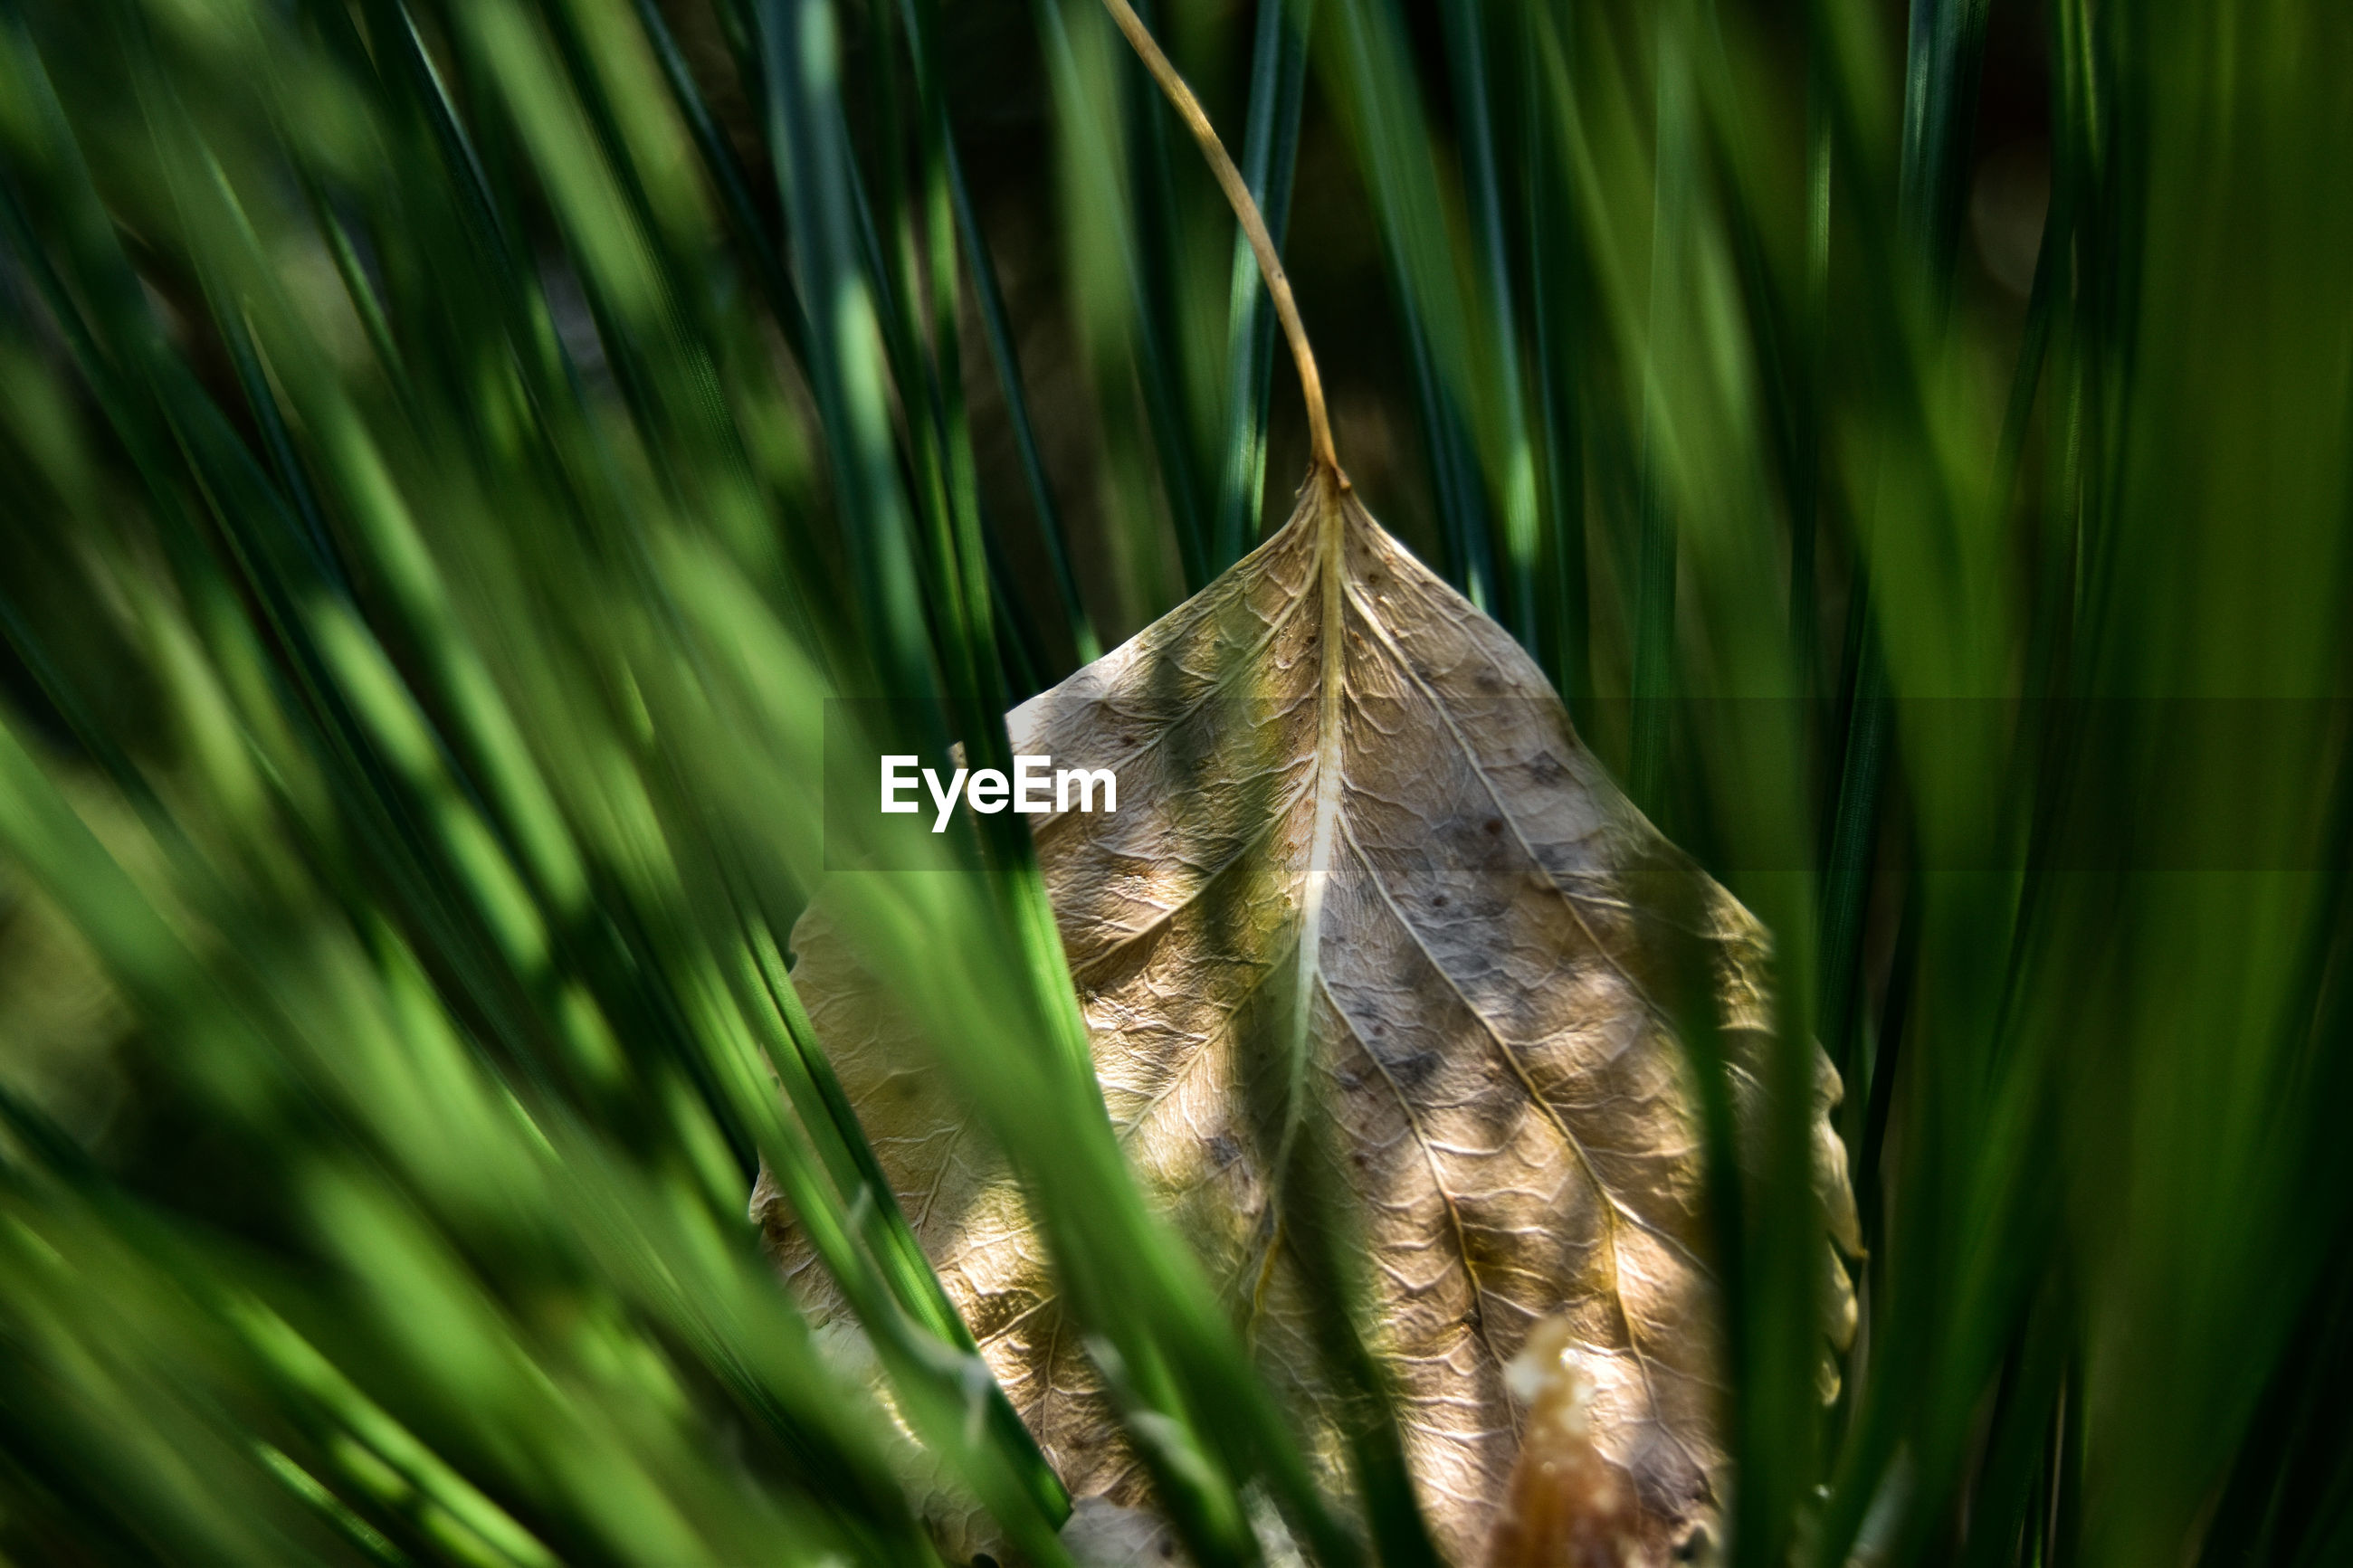 Close-up of leaf on grass